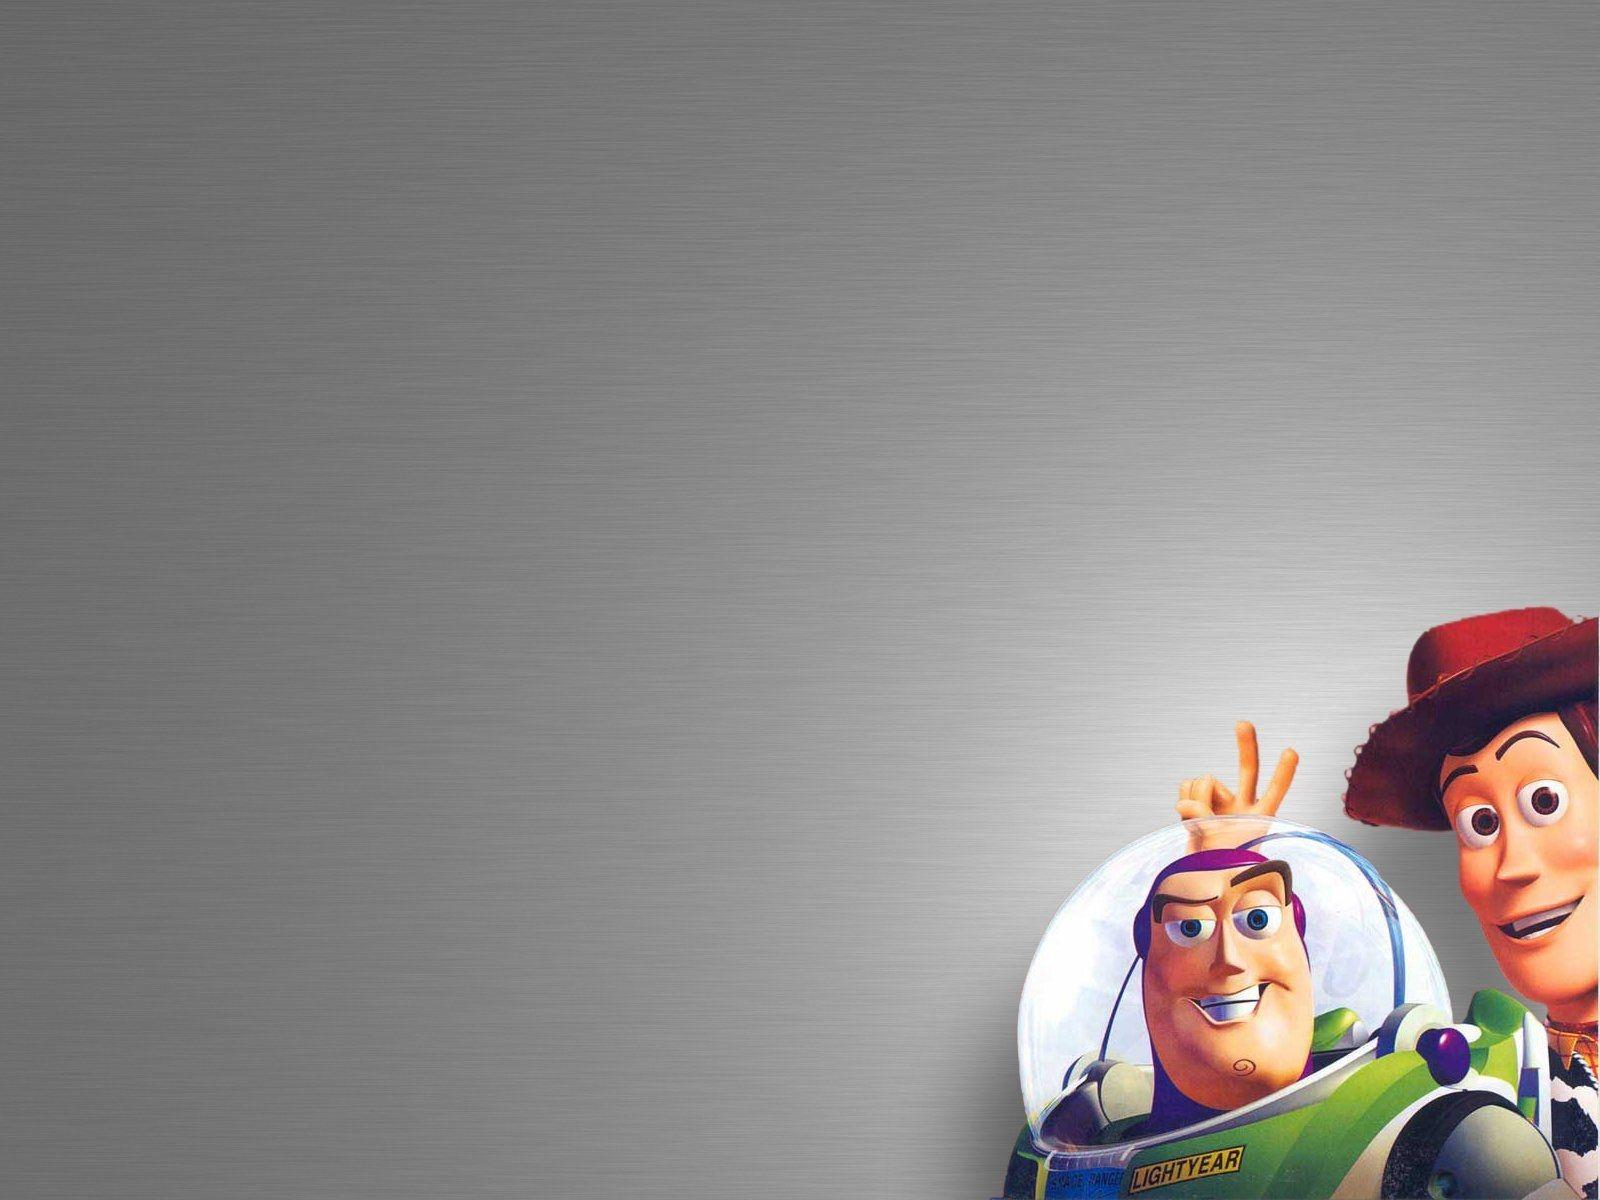 Toy story hd wallpapers wallpaper cave - Toy story wallpaper ...